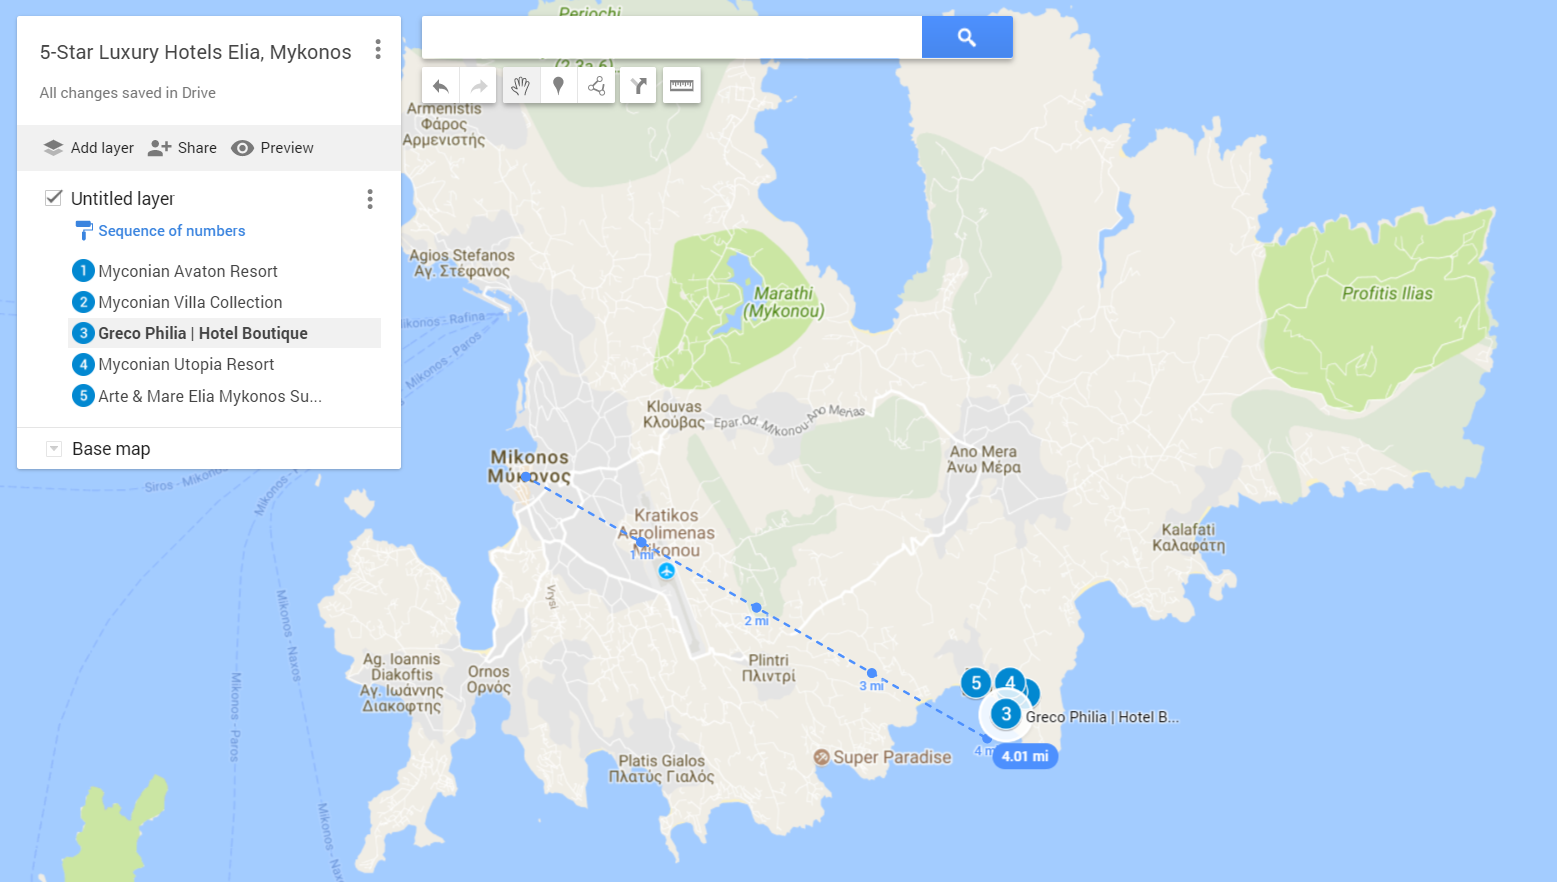 A google map with the locations of the best 5-star Luxury Hotels in Elia, Mykonos Island